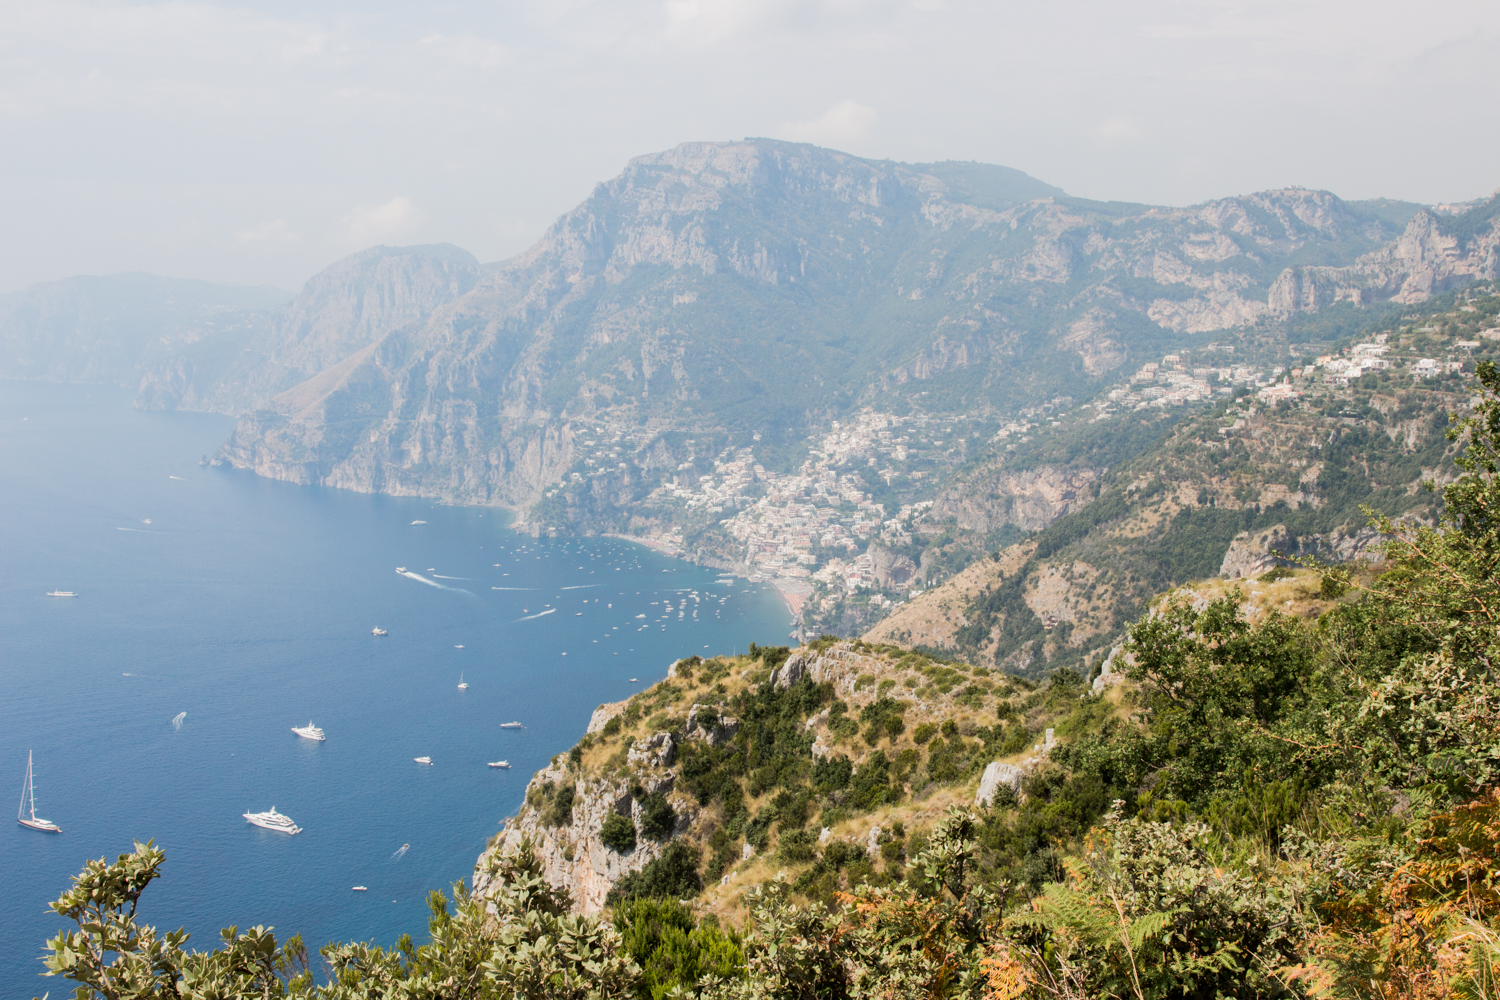 That's Positano down there!